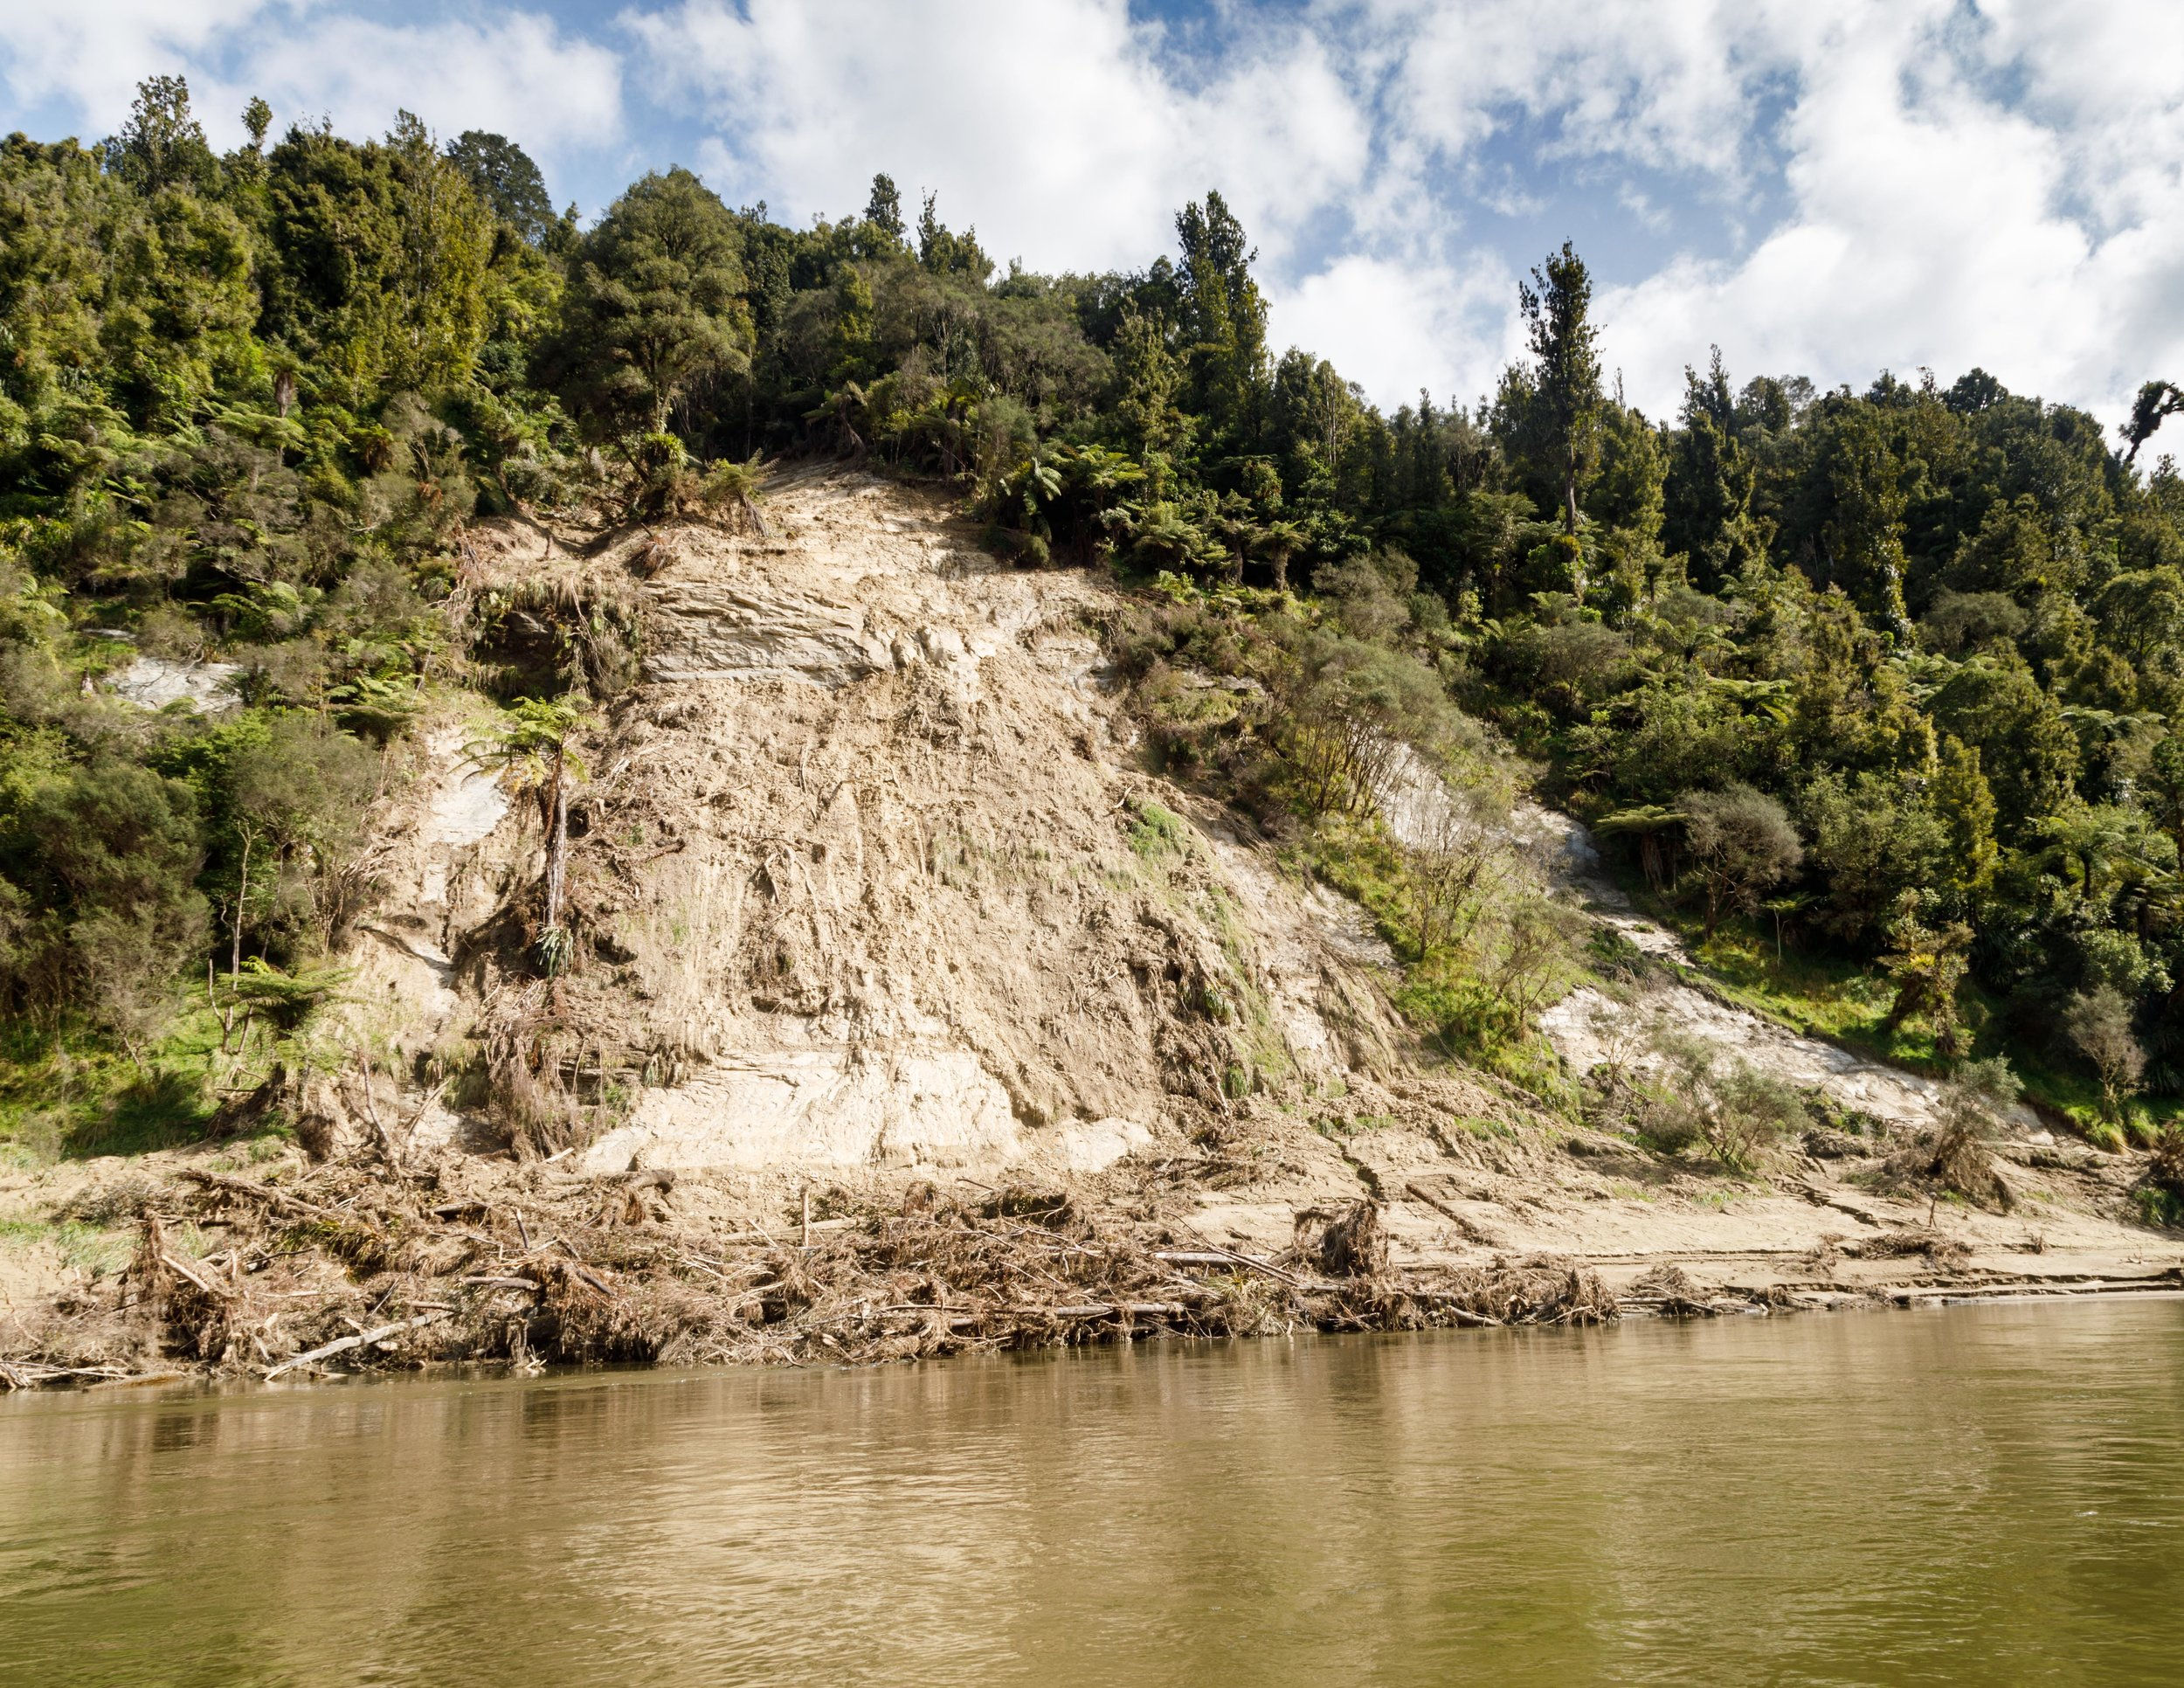 The current condition of the Whanganui River